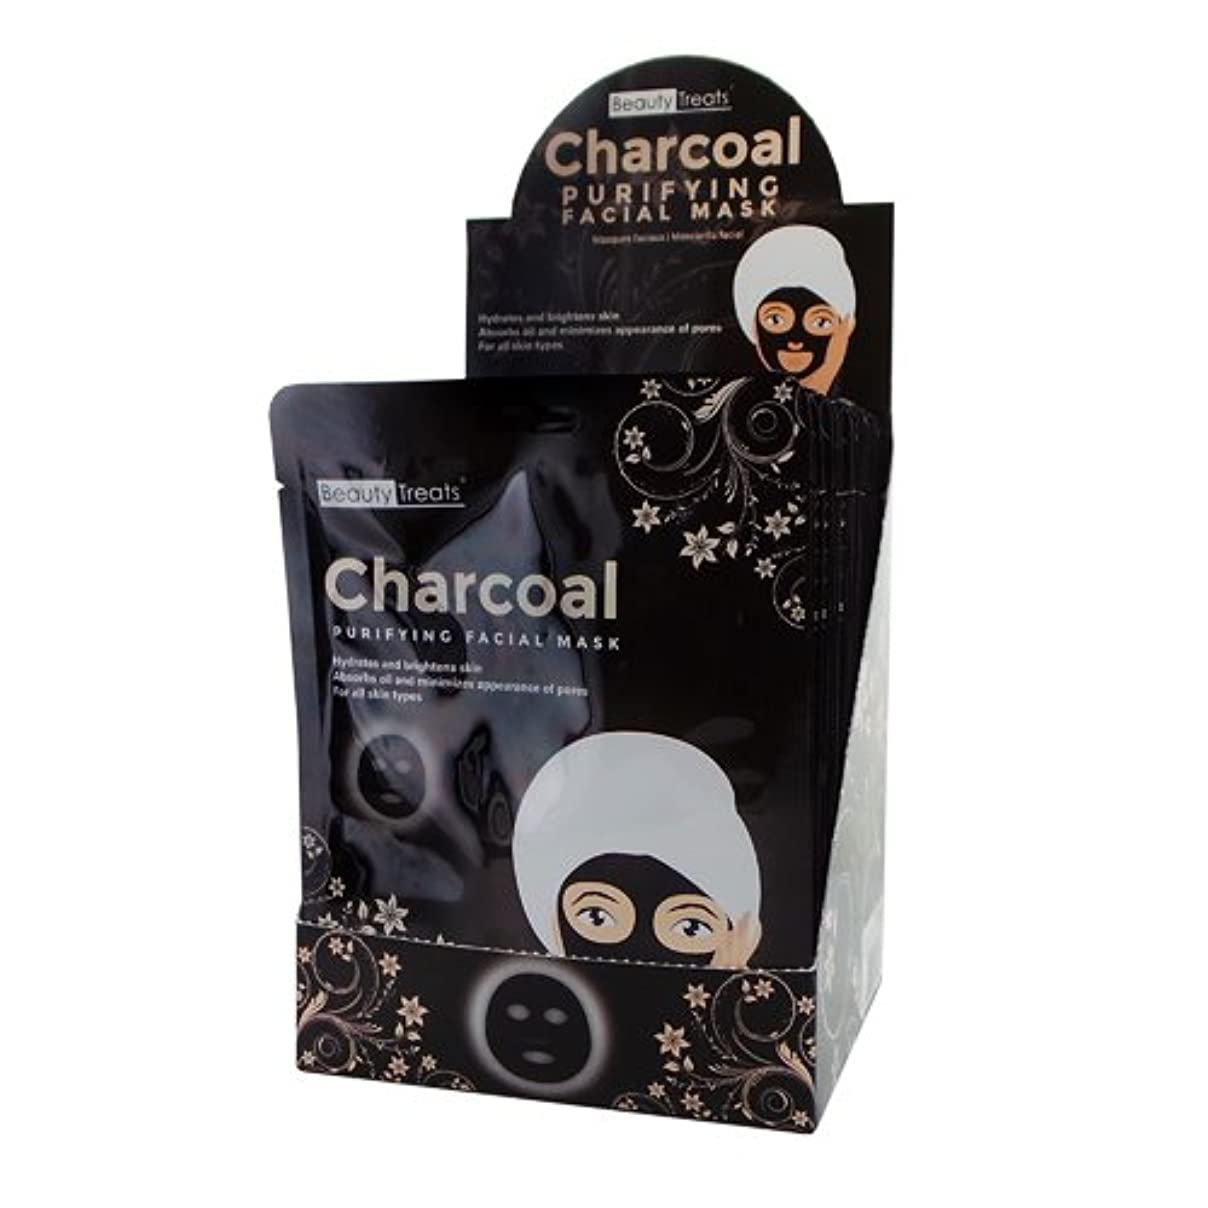 無数の物理的に出身地BEAUTY TREATS Charcoal Purifying Facial Mask Display Box - 24 Pieces (並行輸入品)